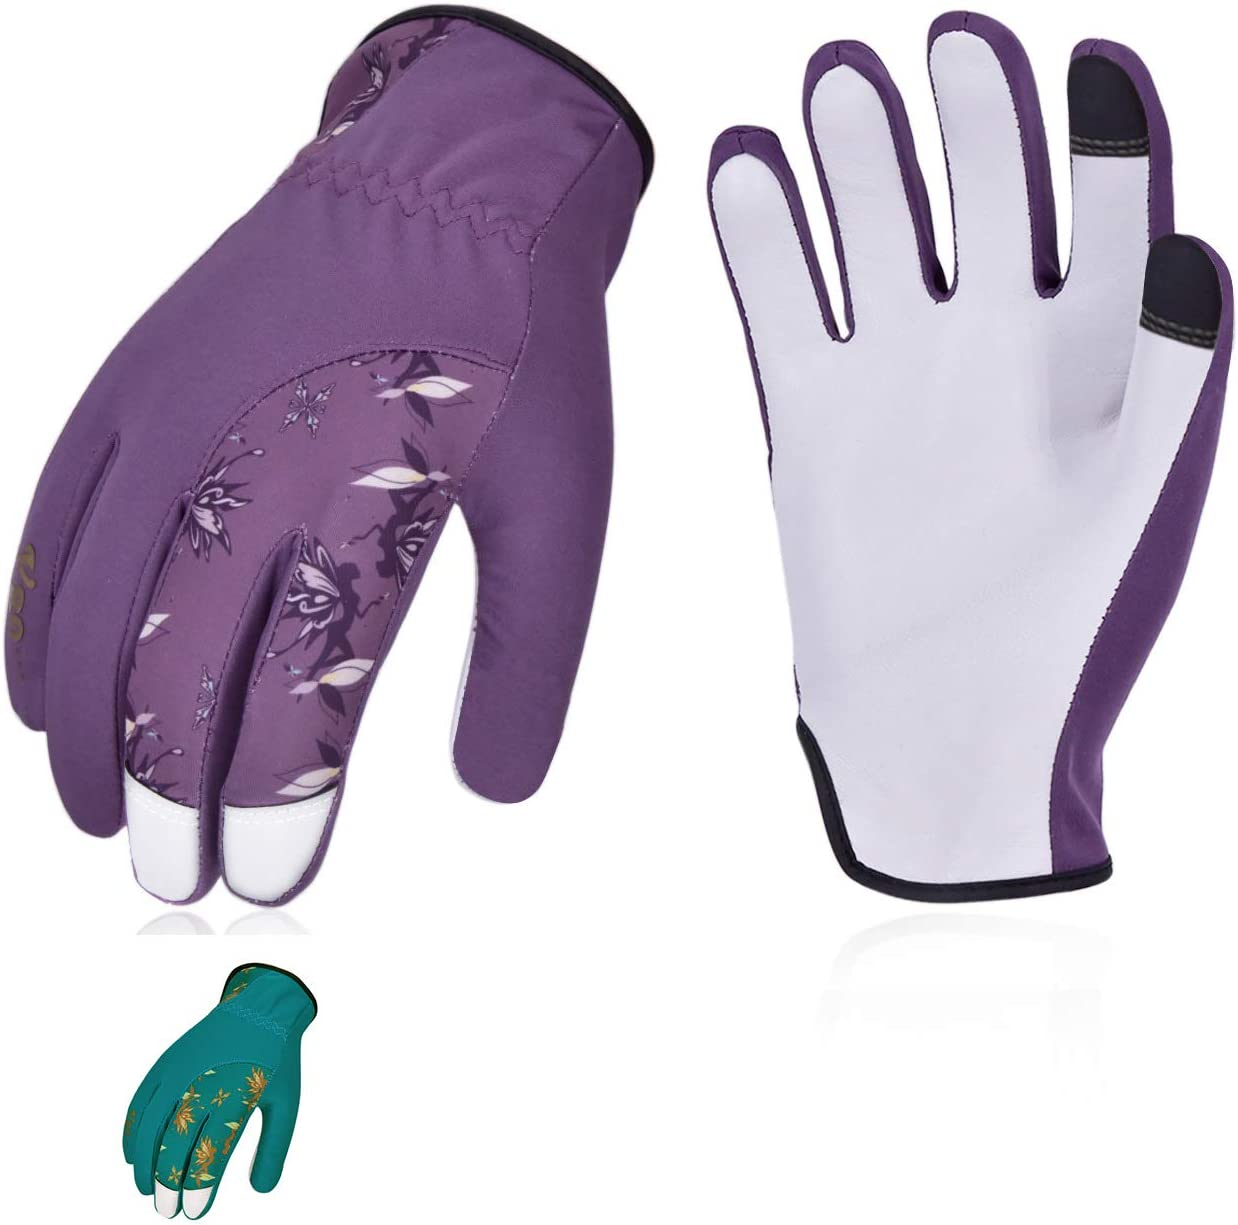 Vgo 2Pairs Ladies' Goatskin Leather Gardening Gloves(Size S,Blue&Purple,GA7454)